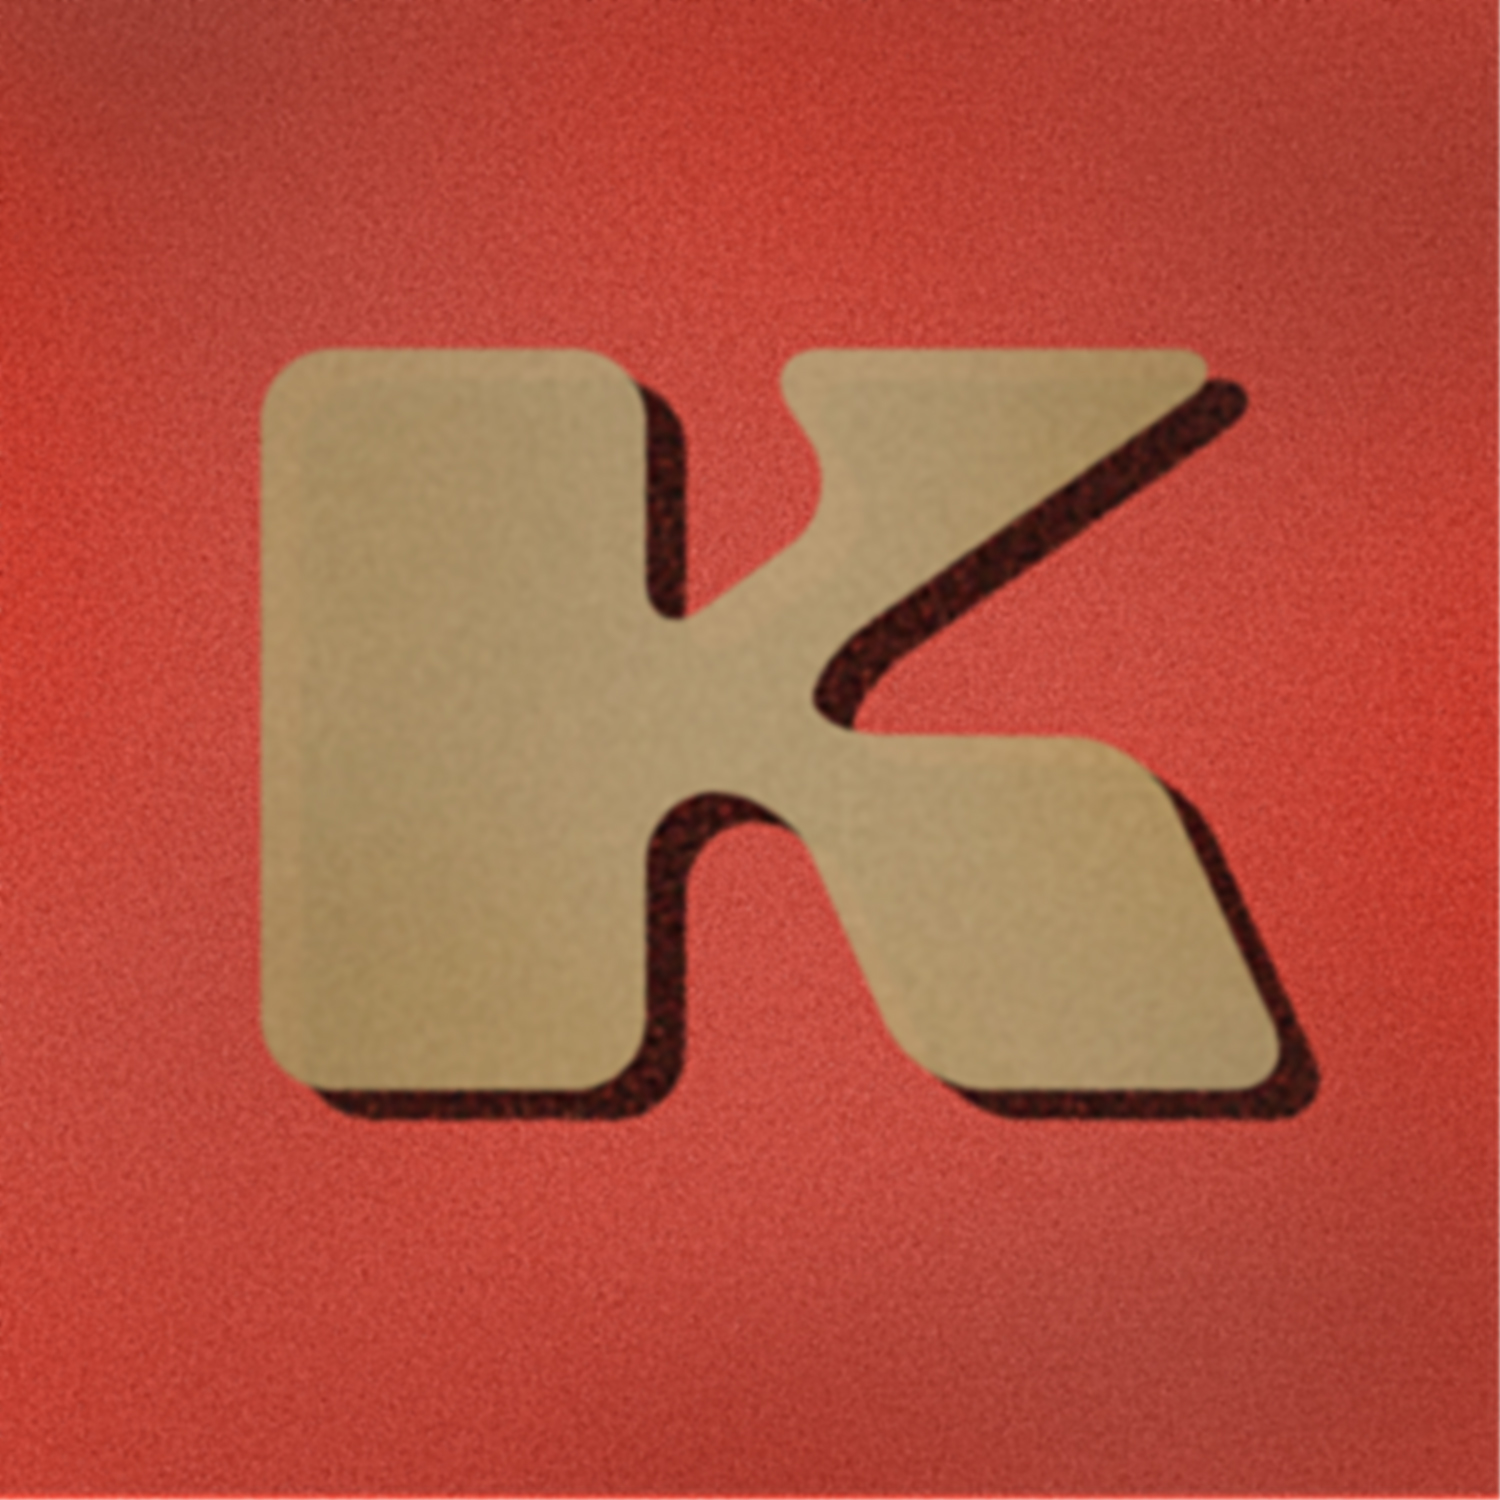 stylized and textured brown letter K with shadow on a red background